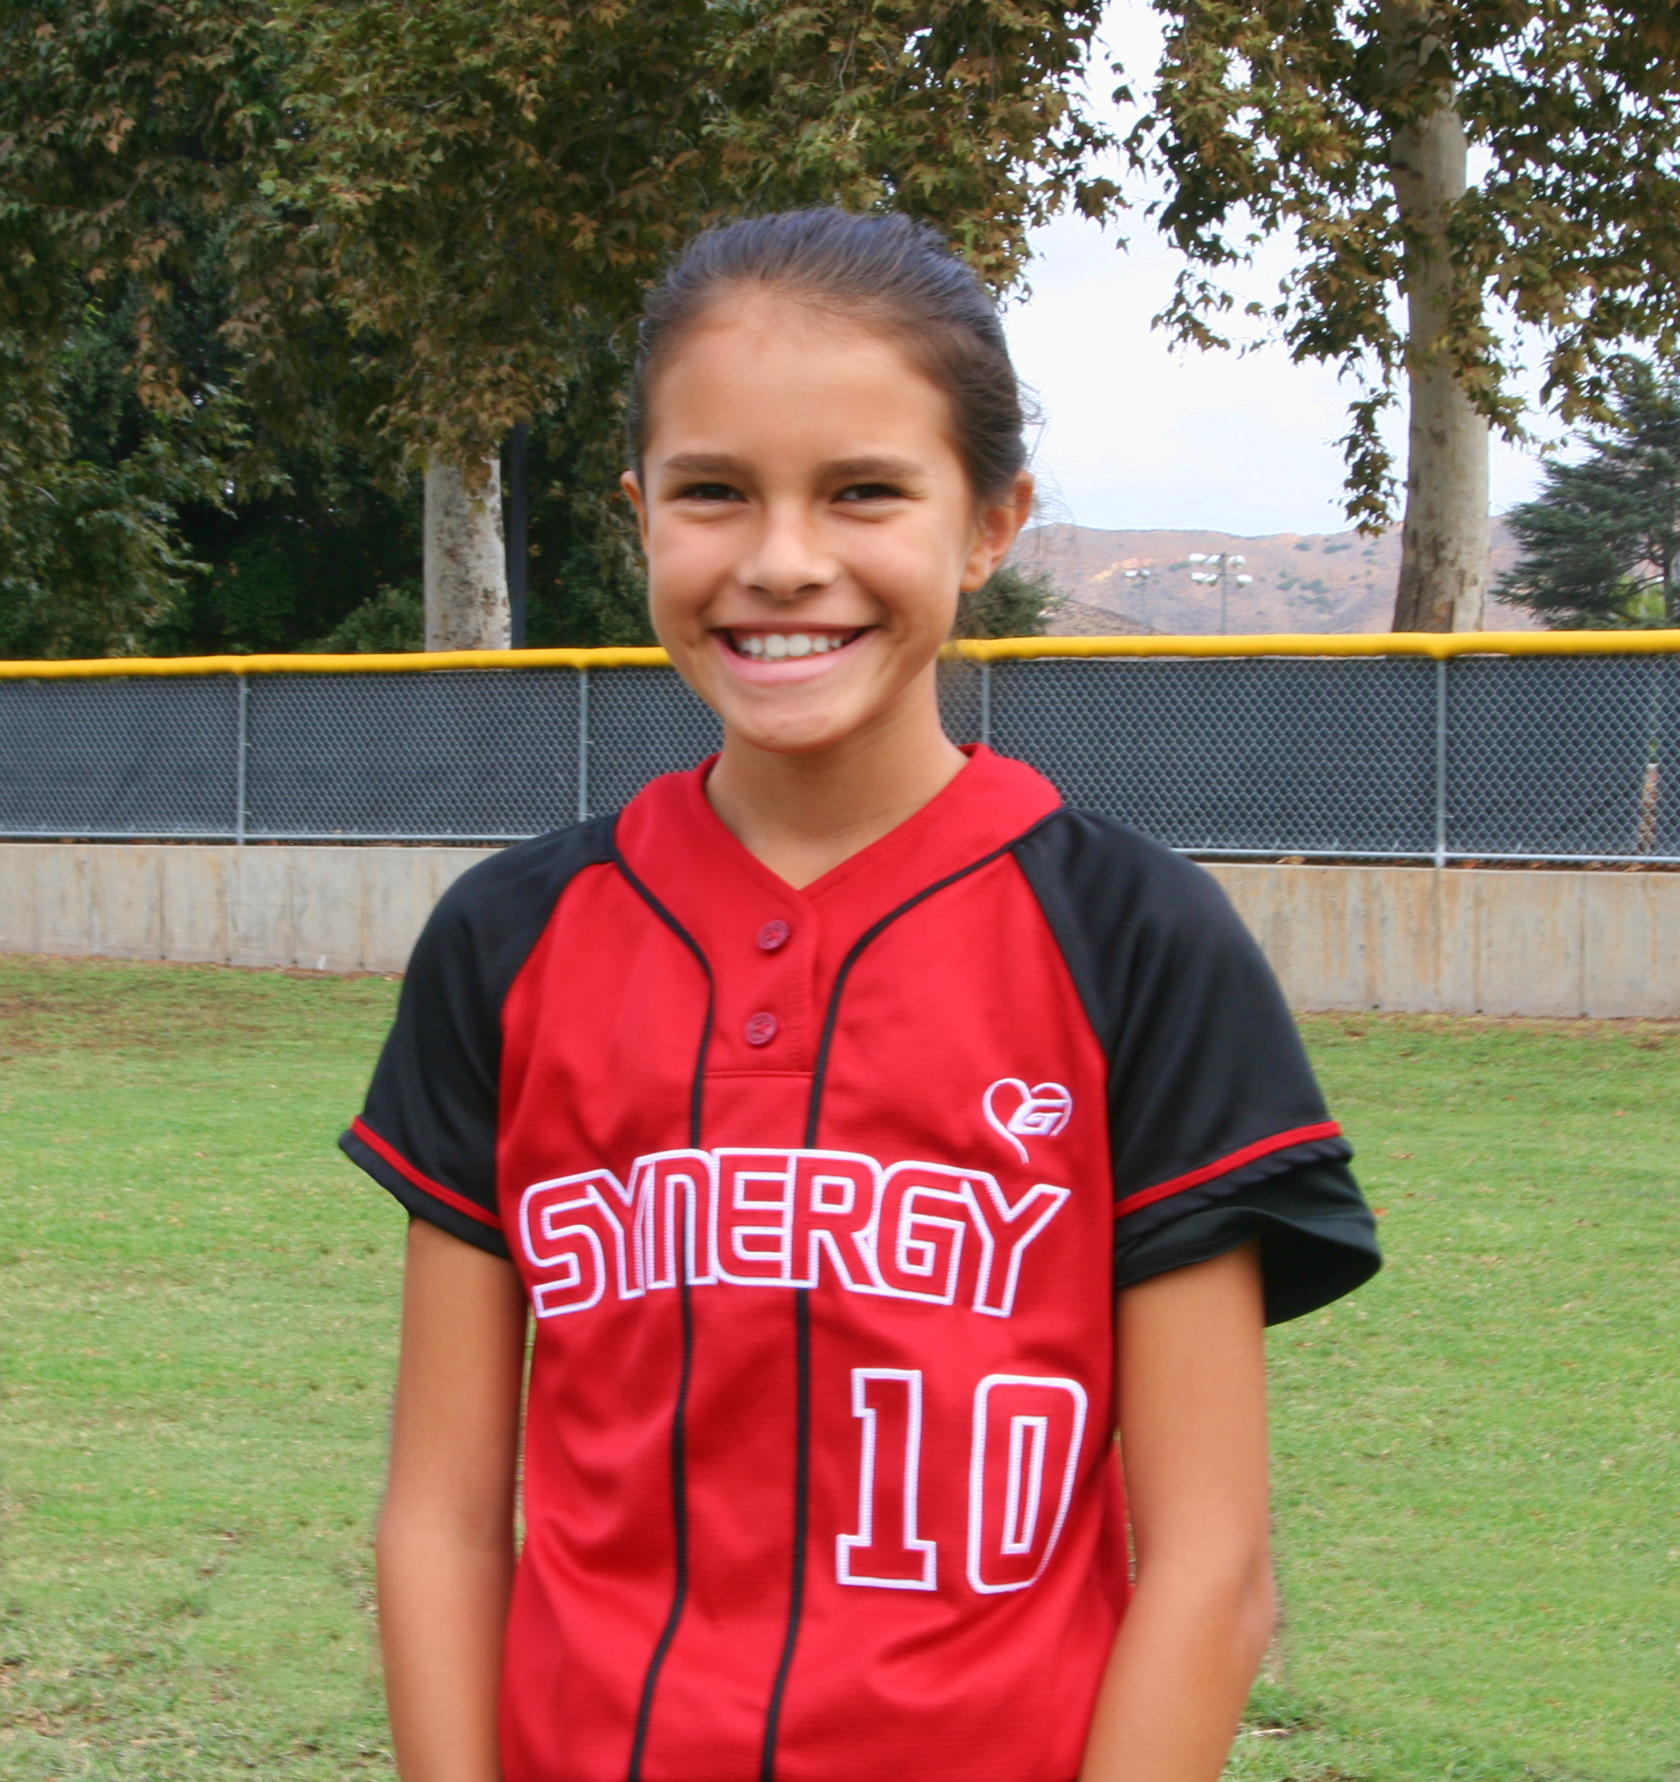 http://synergyfastpitchsoftball.com/wp-content/uploads/2018/10/Aliyah10.png